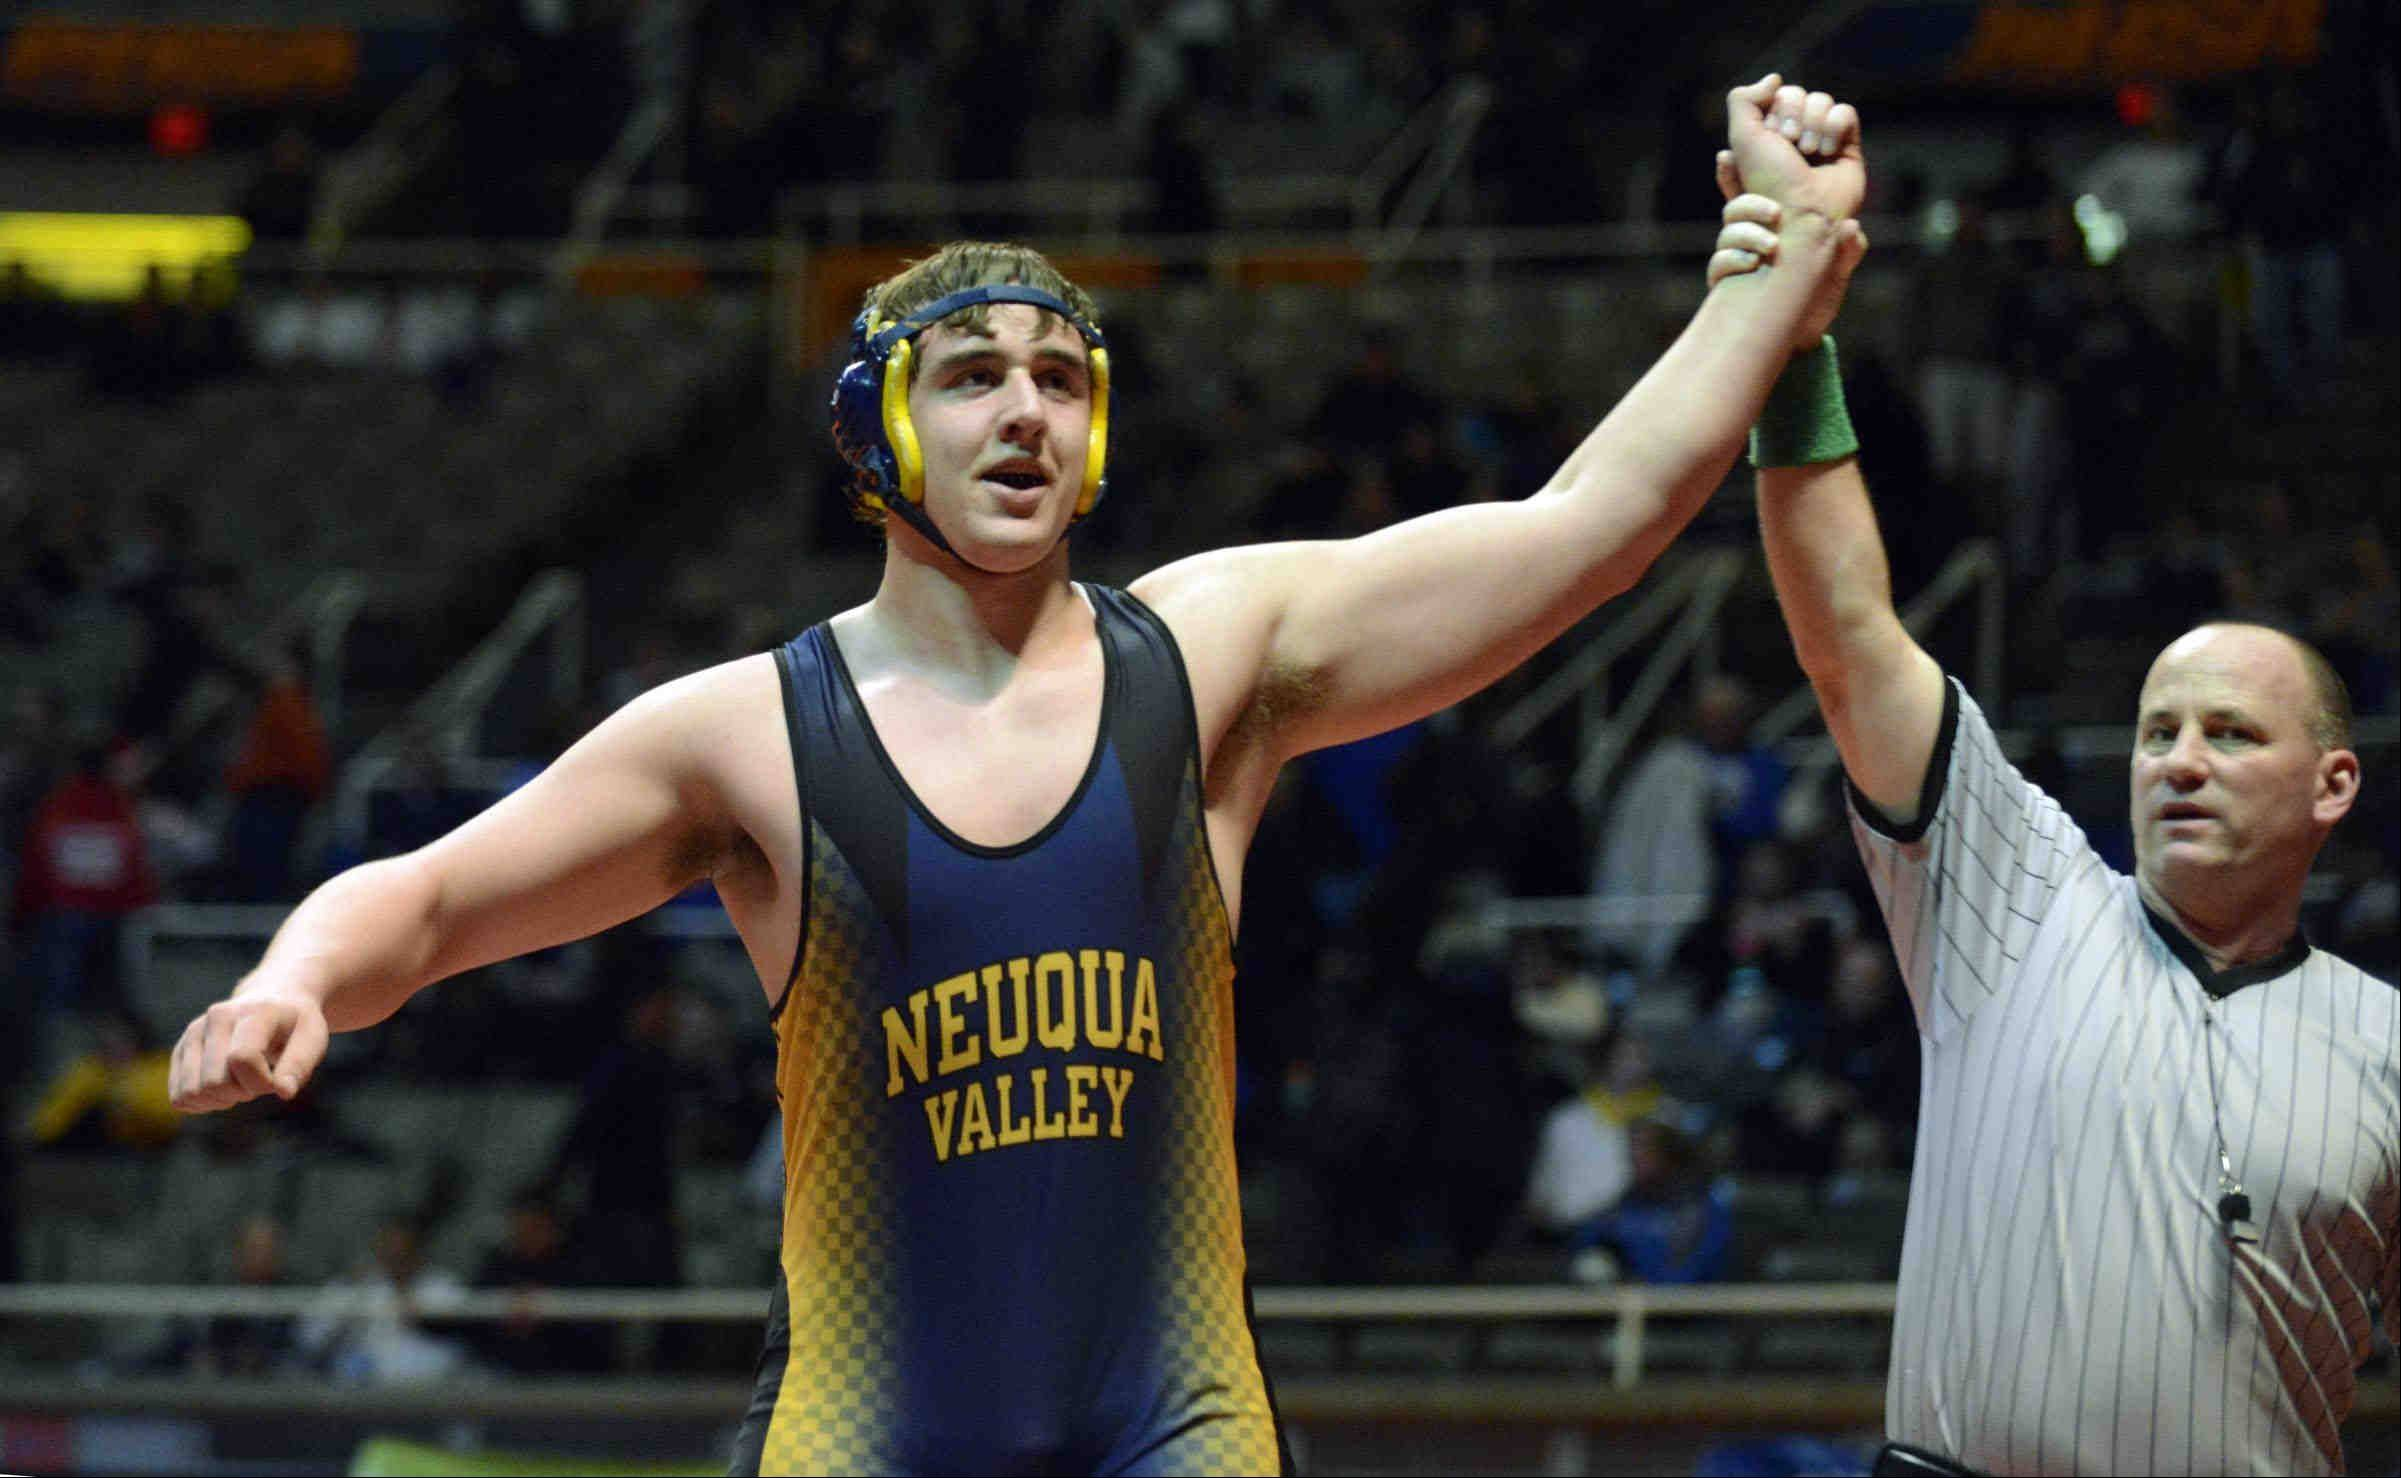 John Starks/jstarks@dailyherald.com � Neuqua Valley's Andrew Geers is declared the winner of the 285 pound Class 3A match over Alex Fritz of Marmion Academy Friday in the IHSA semifinal wrestling match at Assembly Hall in Champaign.